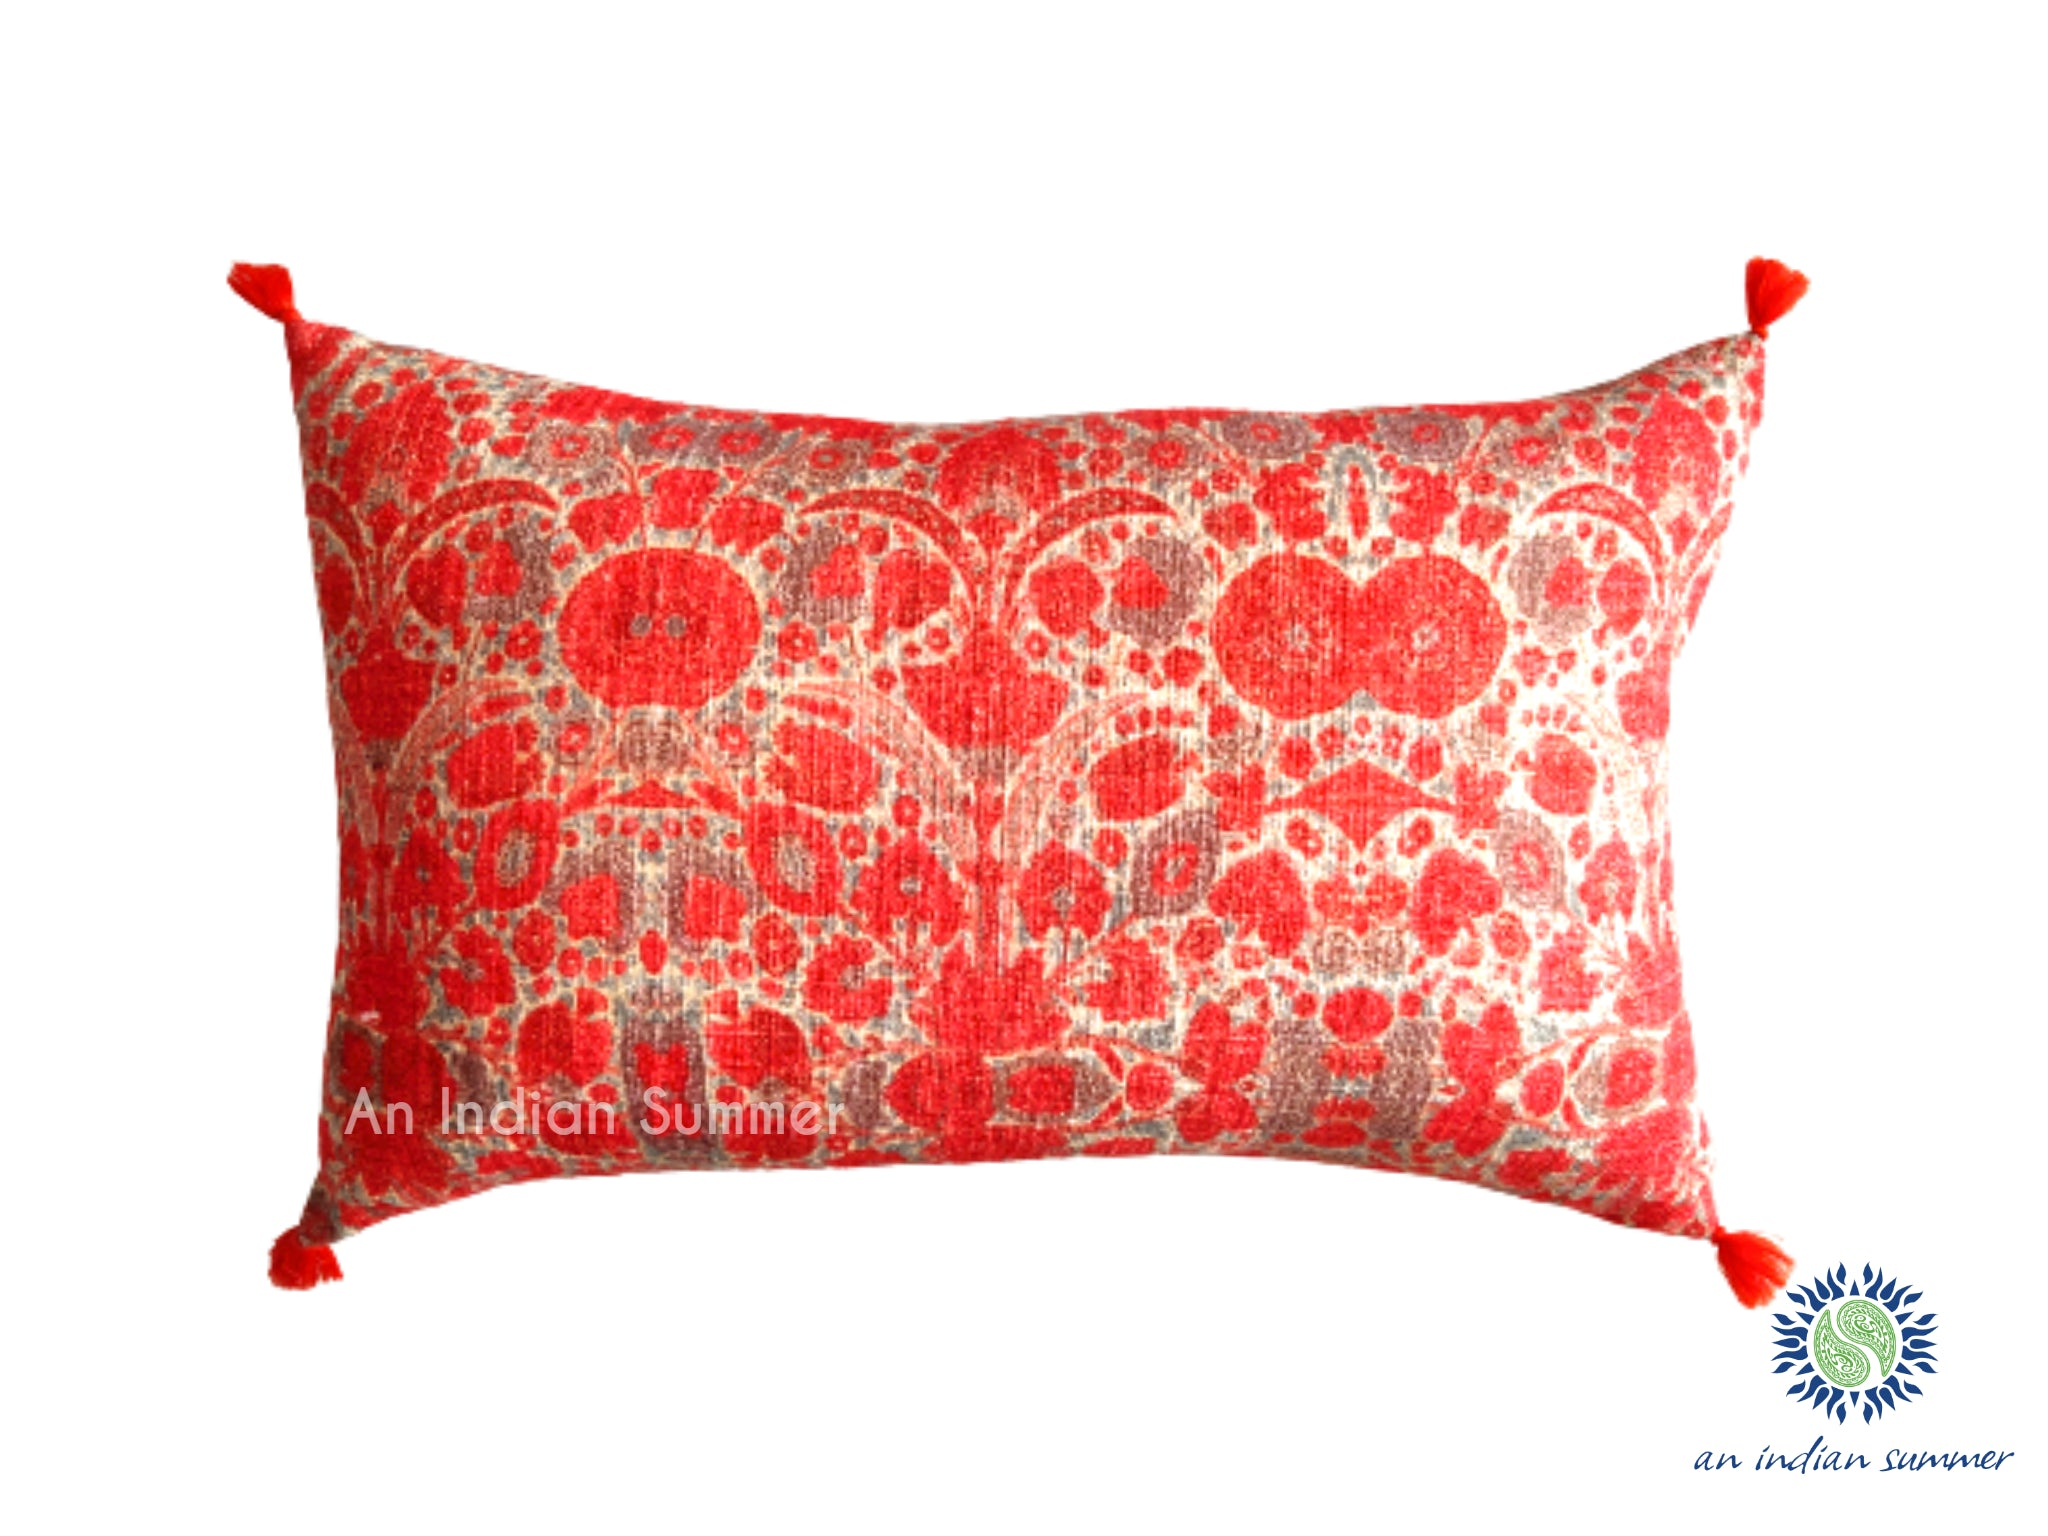 Floral Cushion Khadi Cotton Handloom Woven | An Indian Summer | Seasonless Timeless Sustainable Ethical Authentic Artisan Conscious Clothing Lifestyle Brand